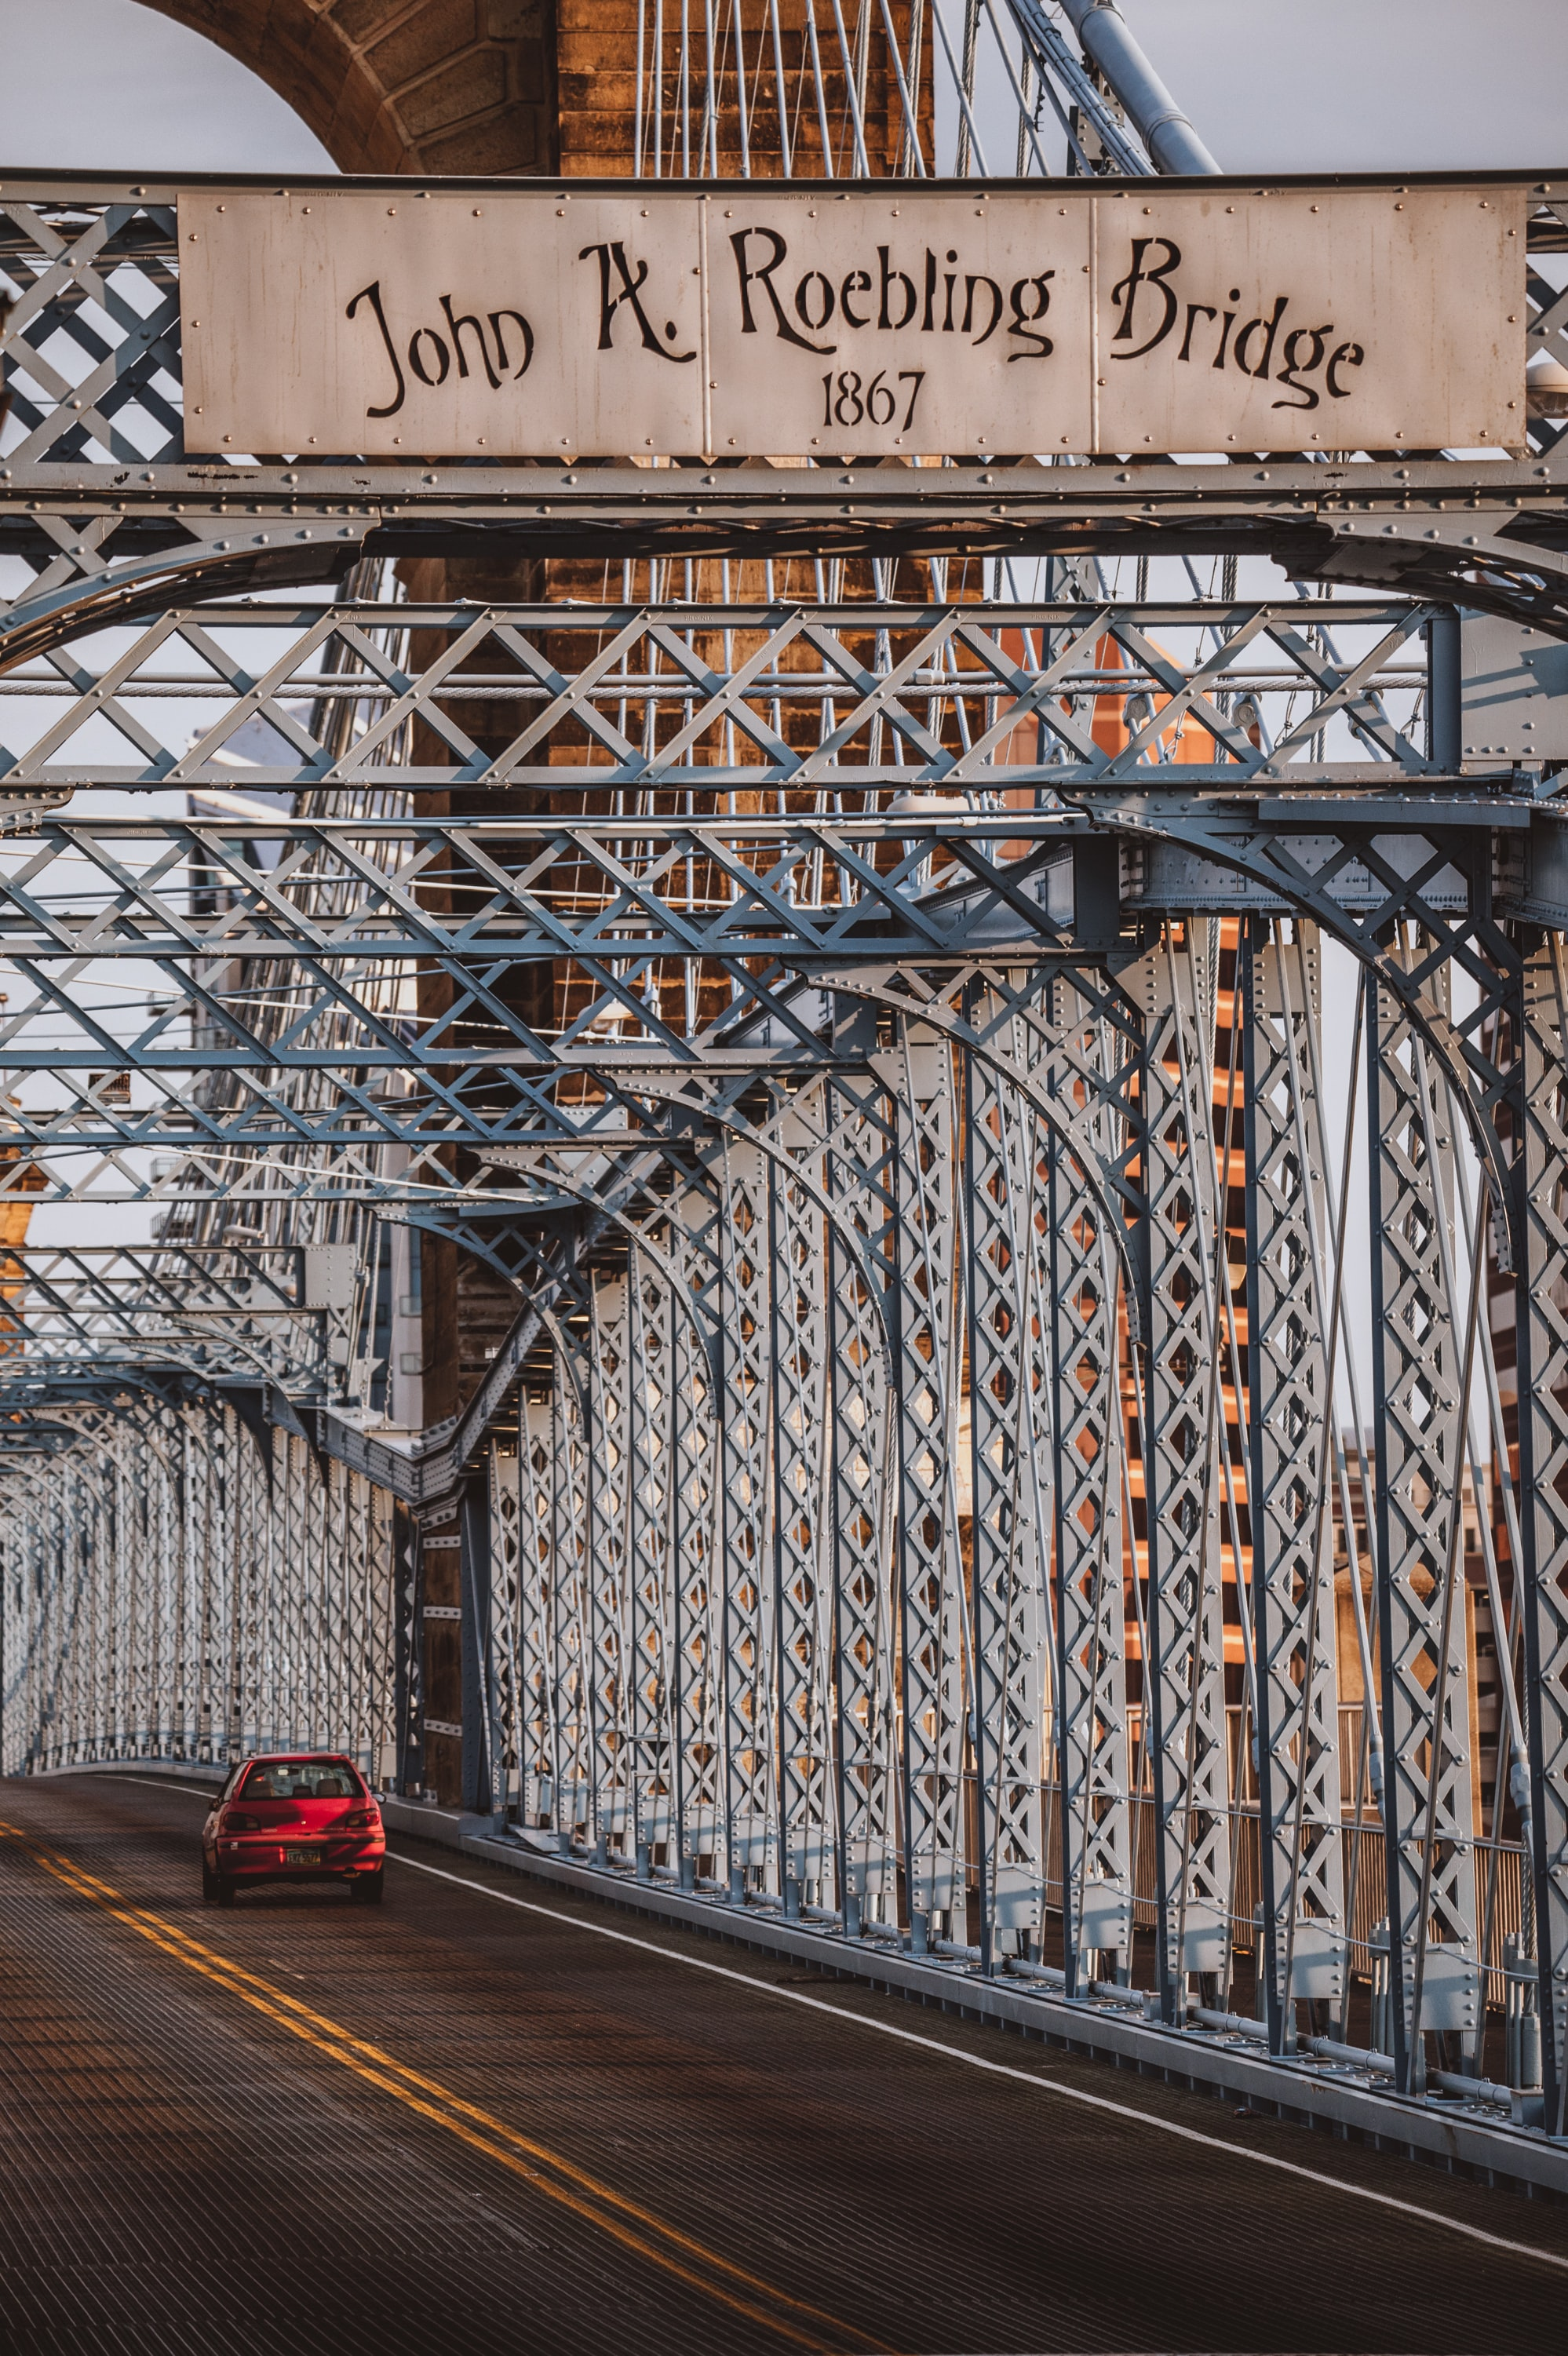 red 5-door hatchback driving on John A. Roebling Bridge